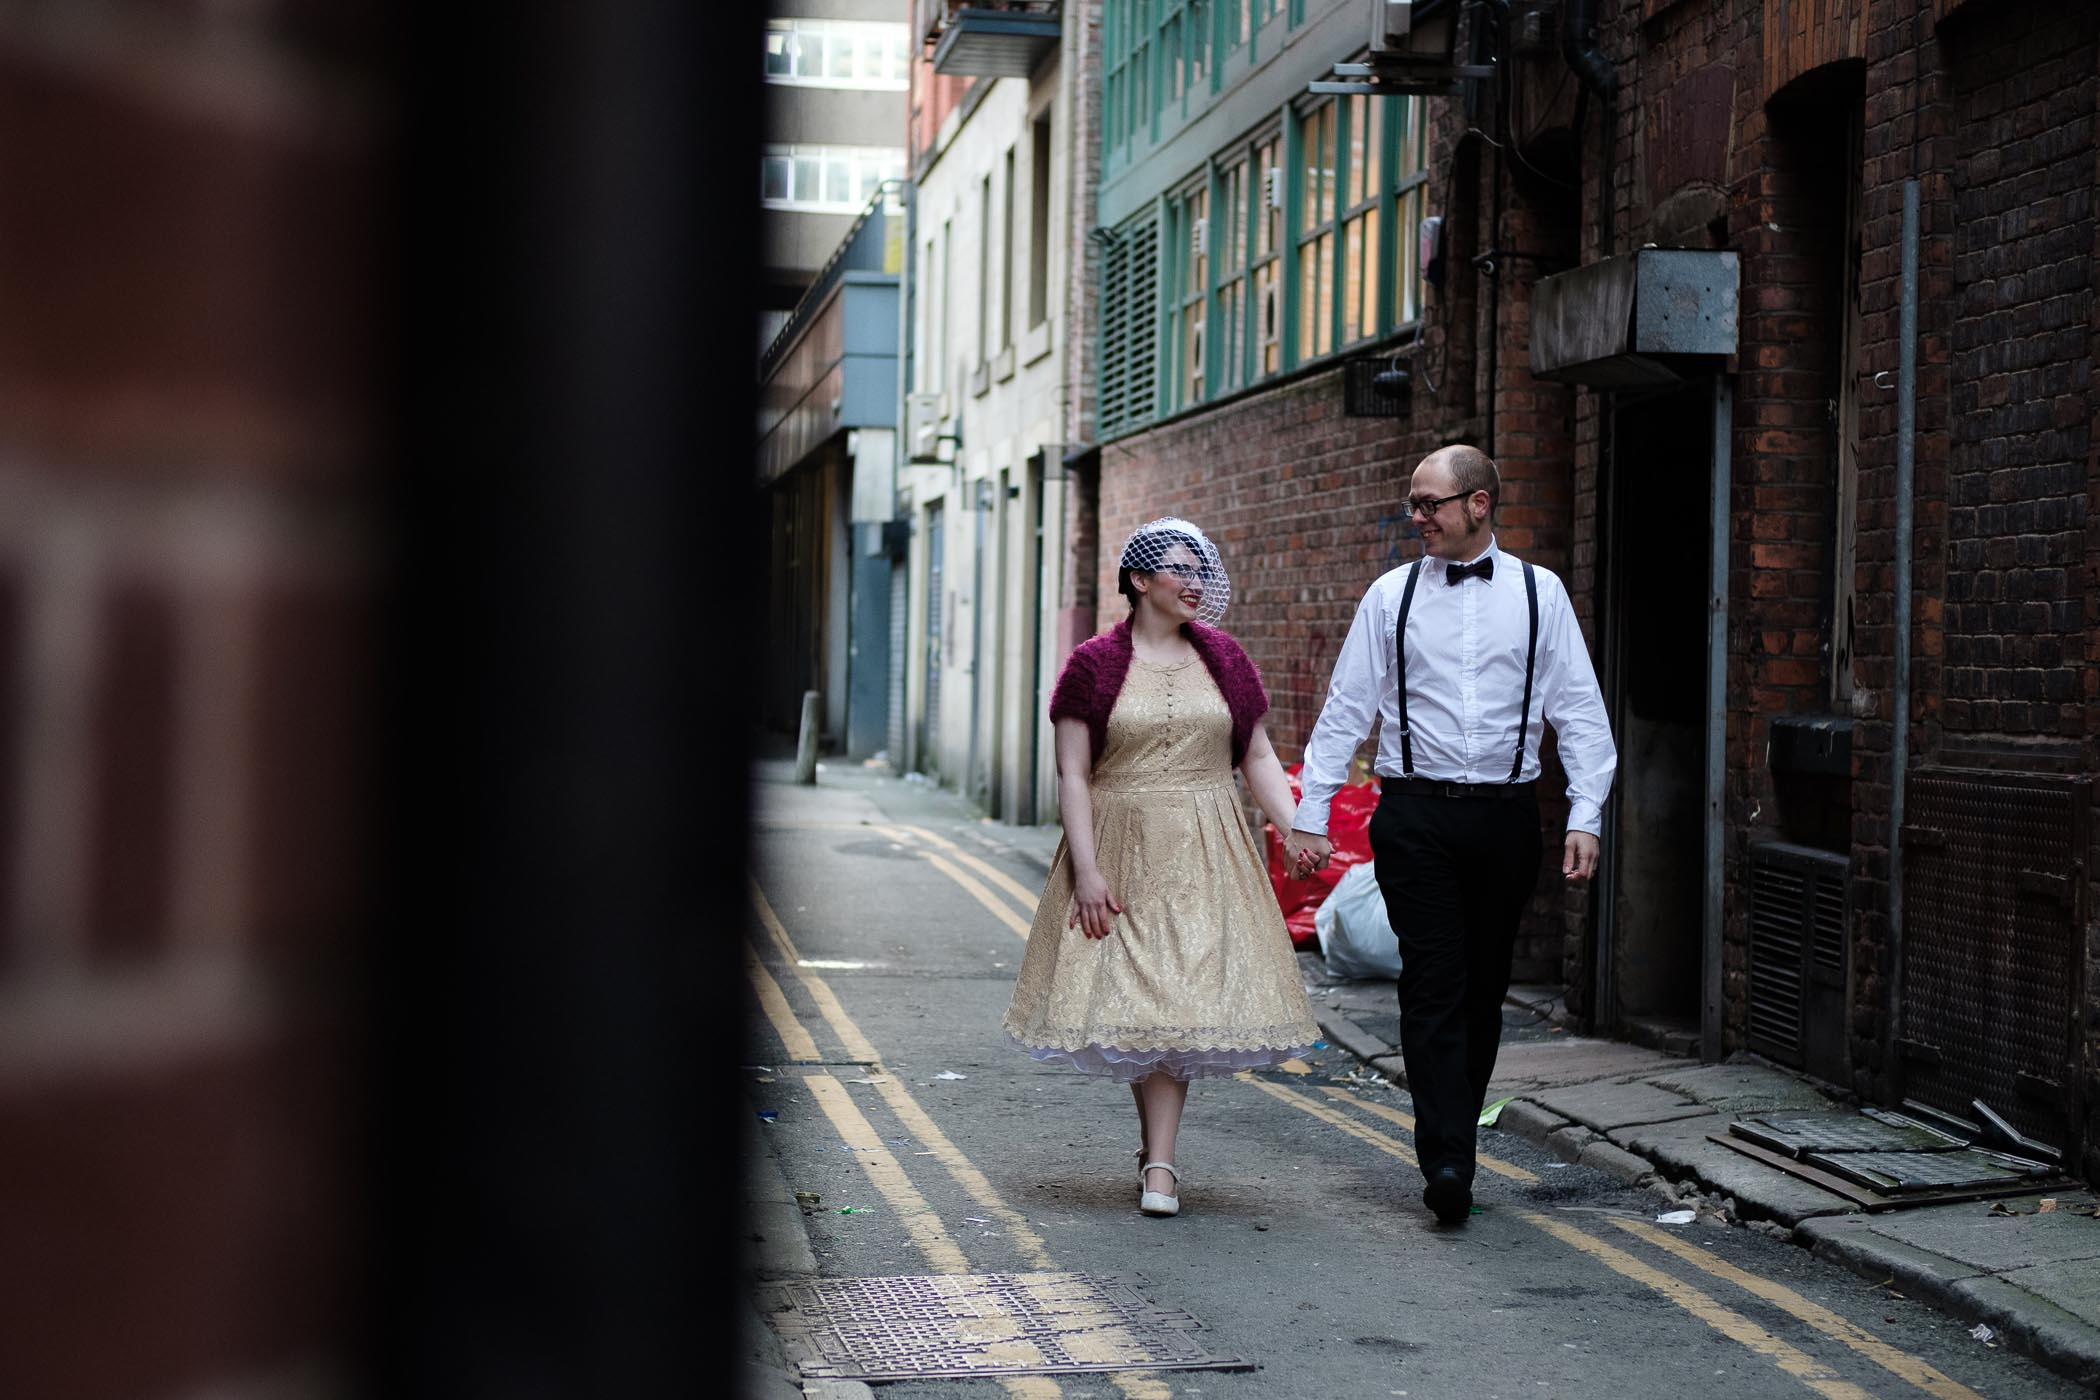 Gemma & Mike walking through side street in Manchester